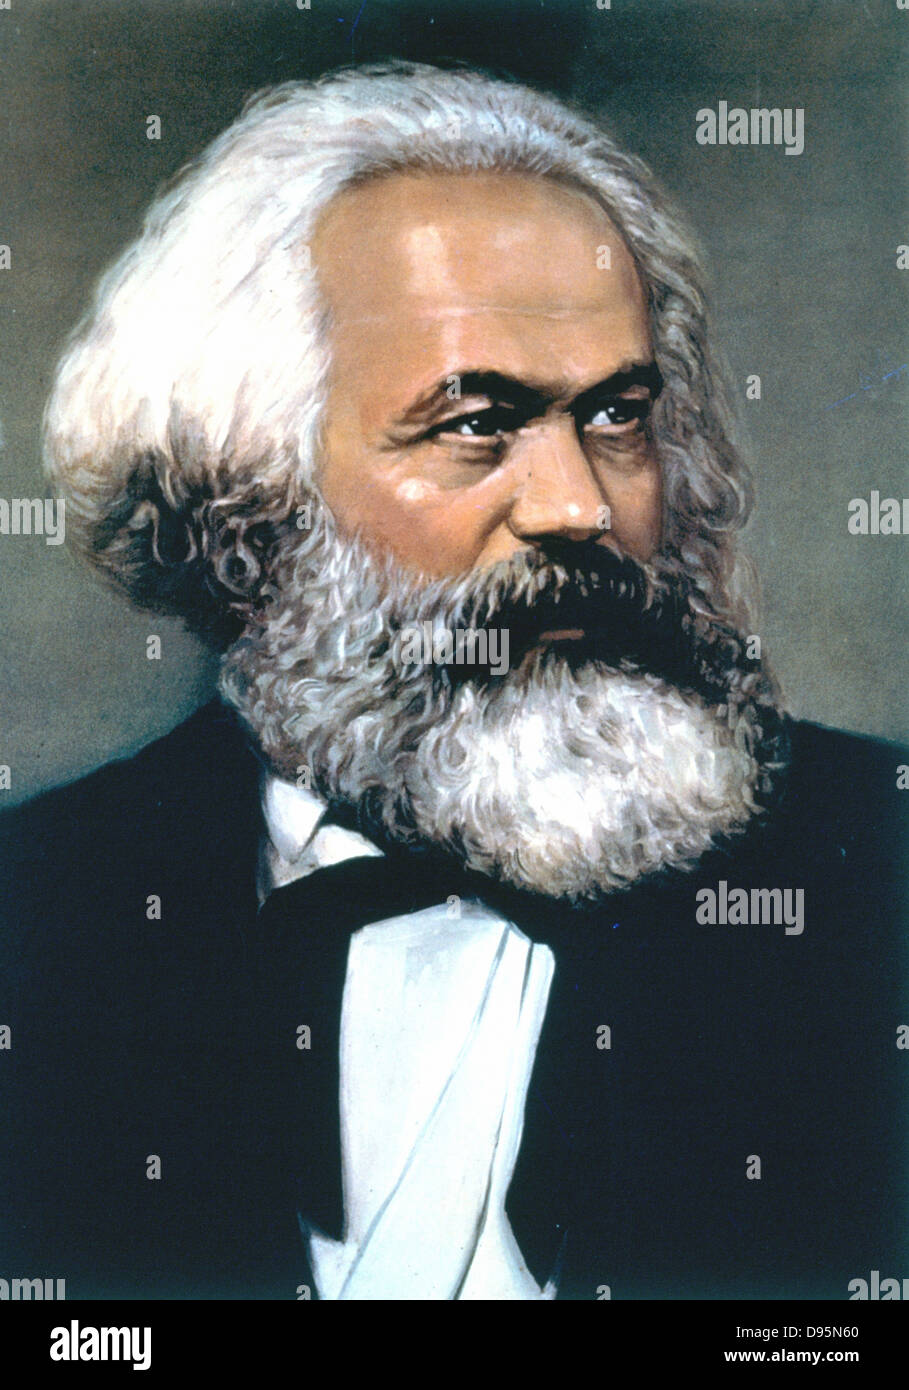 karl marx set the wheels of modern communism and socialism in motion